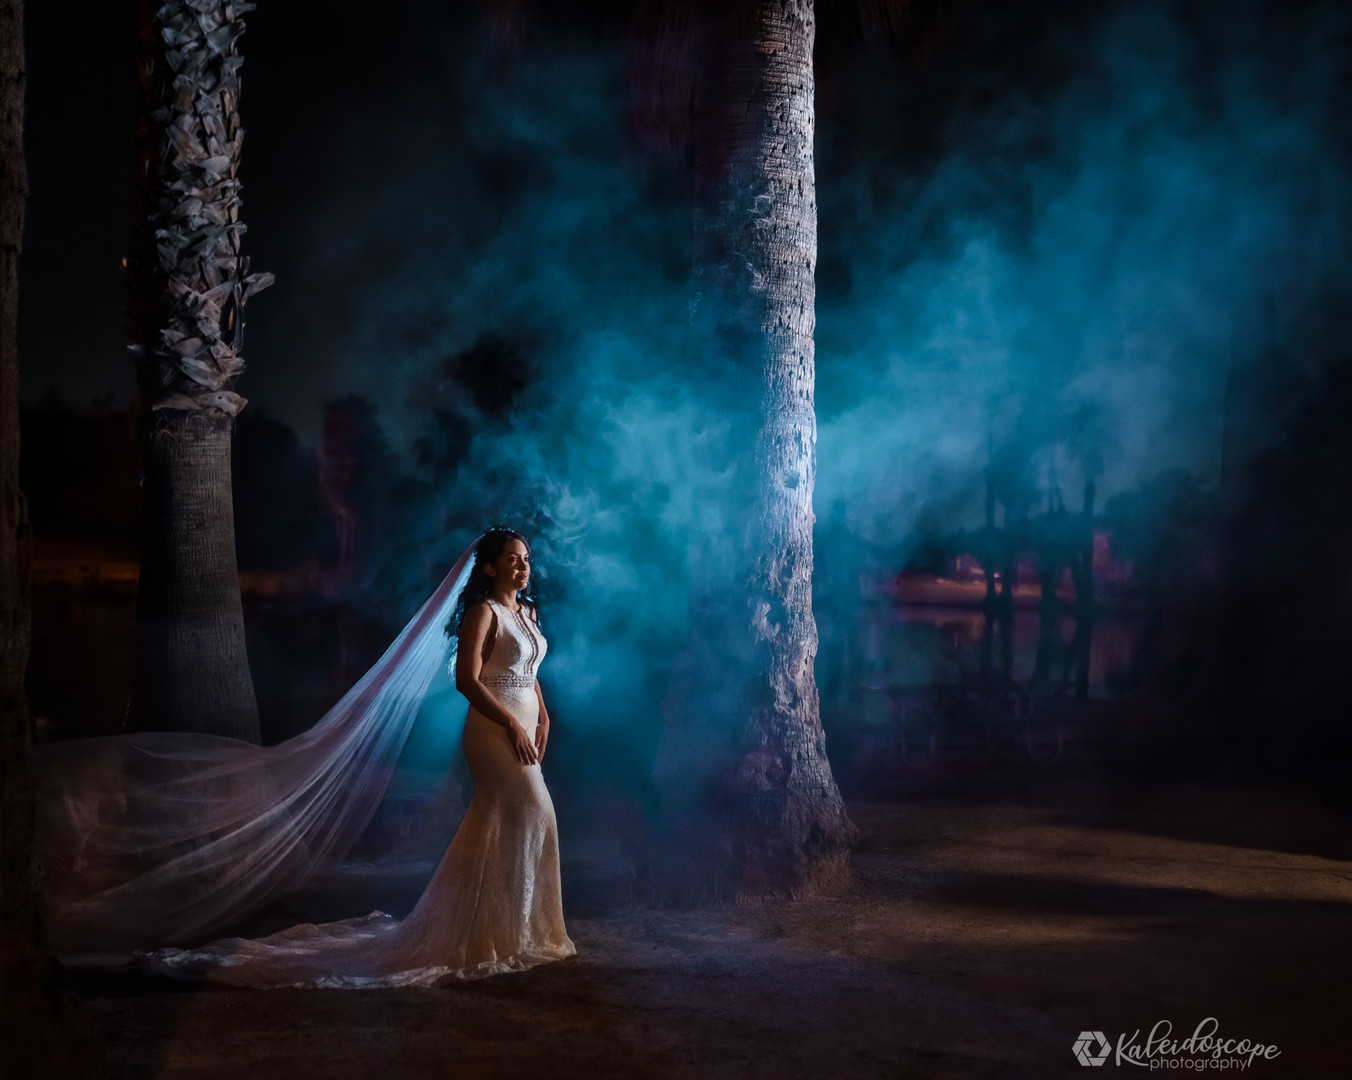 scenic-wedding-photo-with-fog.jpg